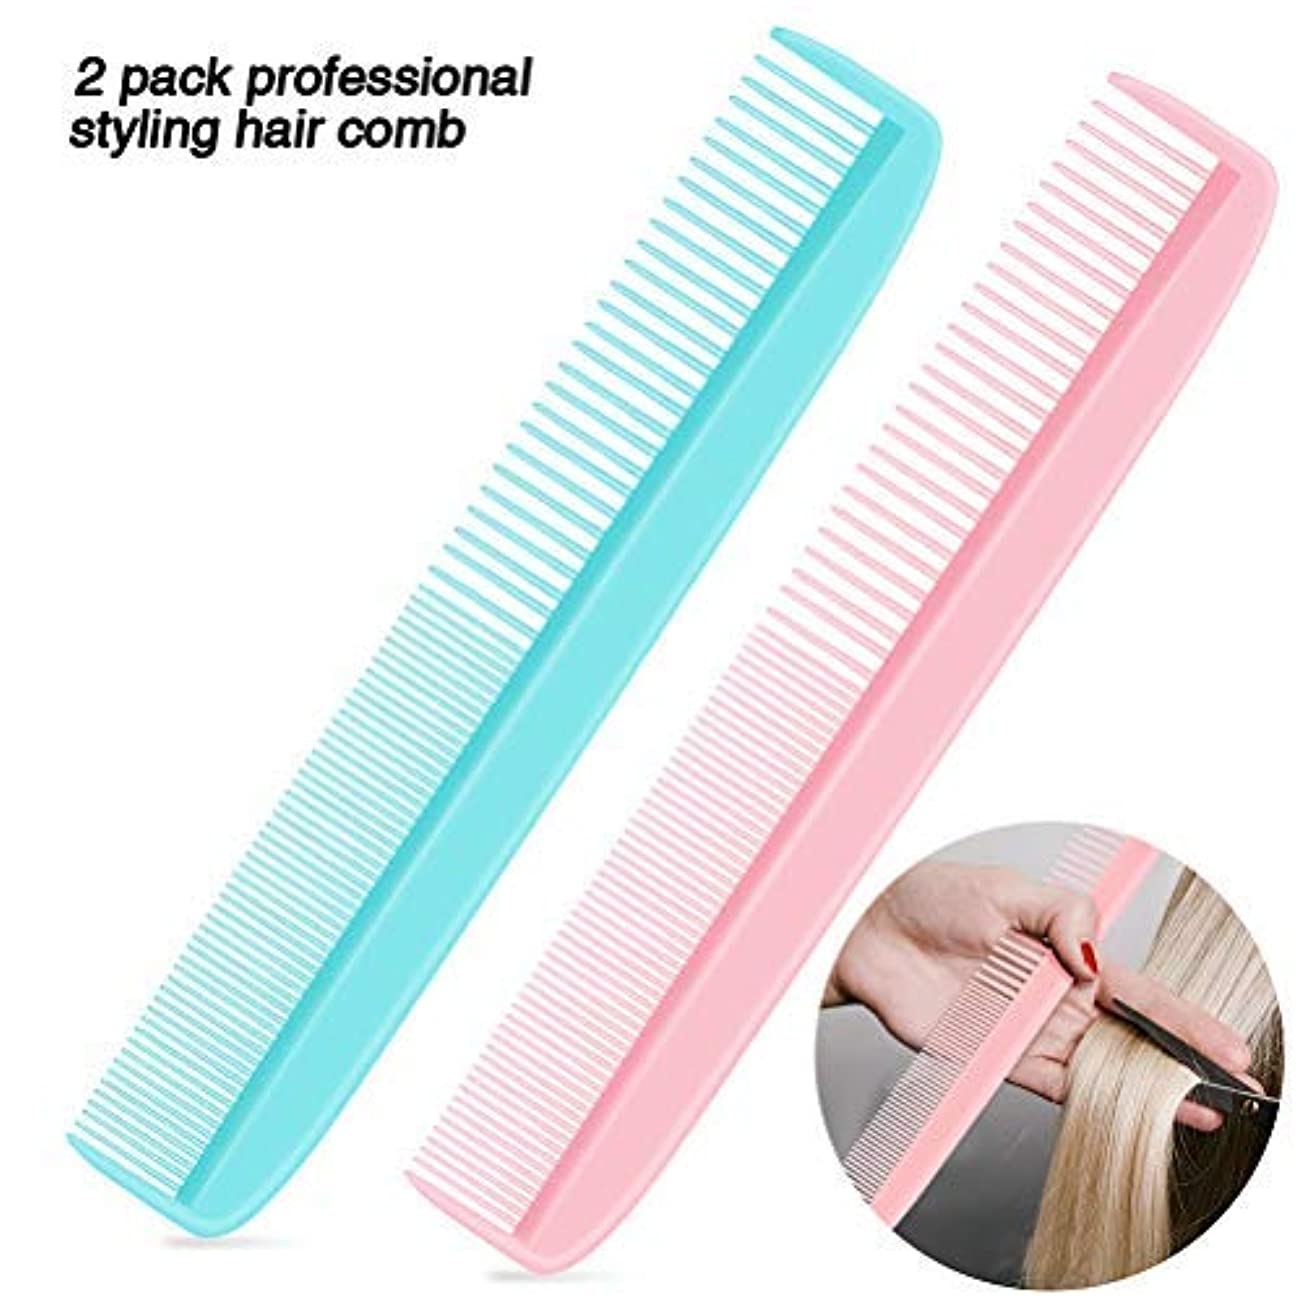 2 Pack Anti-static Professional Styling Comb Hairdresser Barber Comb - 7 Inch Coarse/Fine Tooth Rake Comb [並行輸入品]